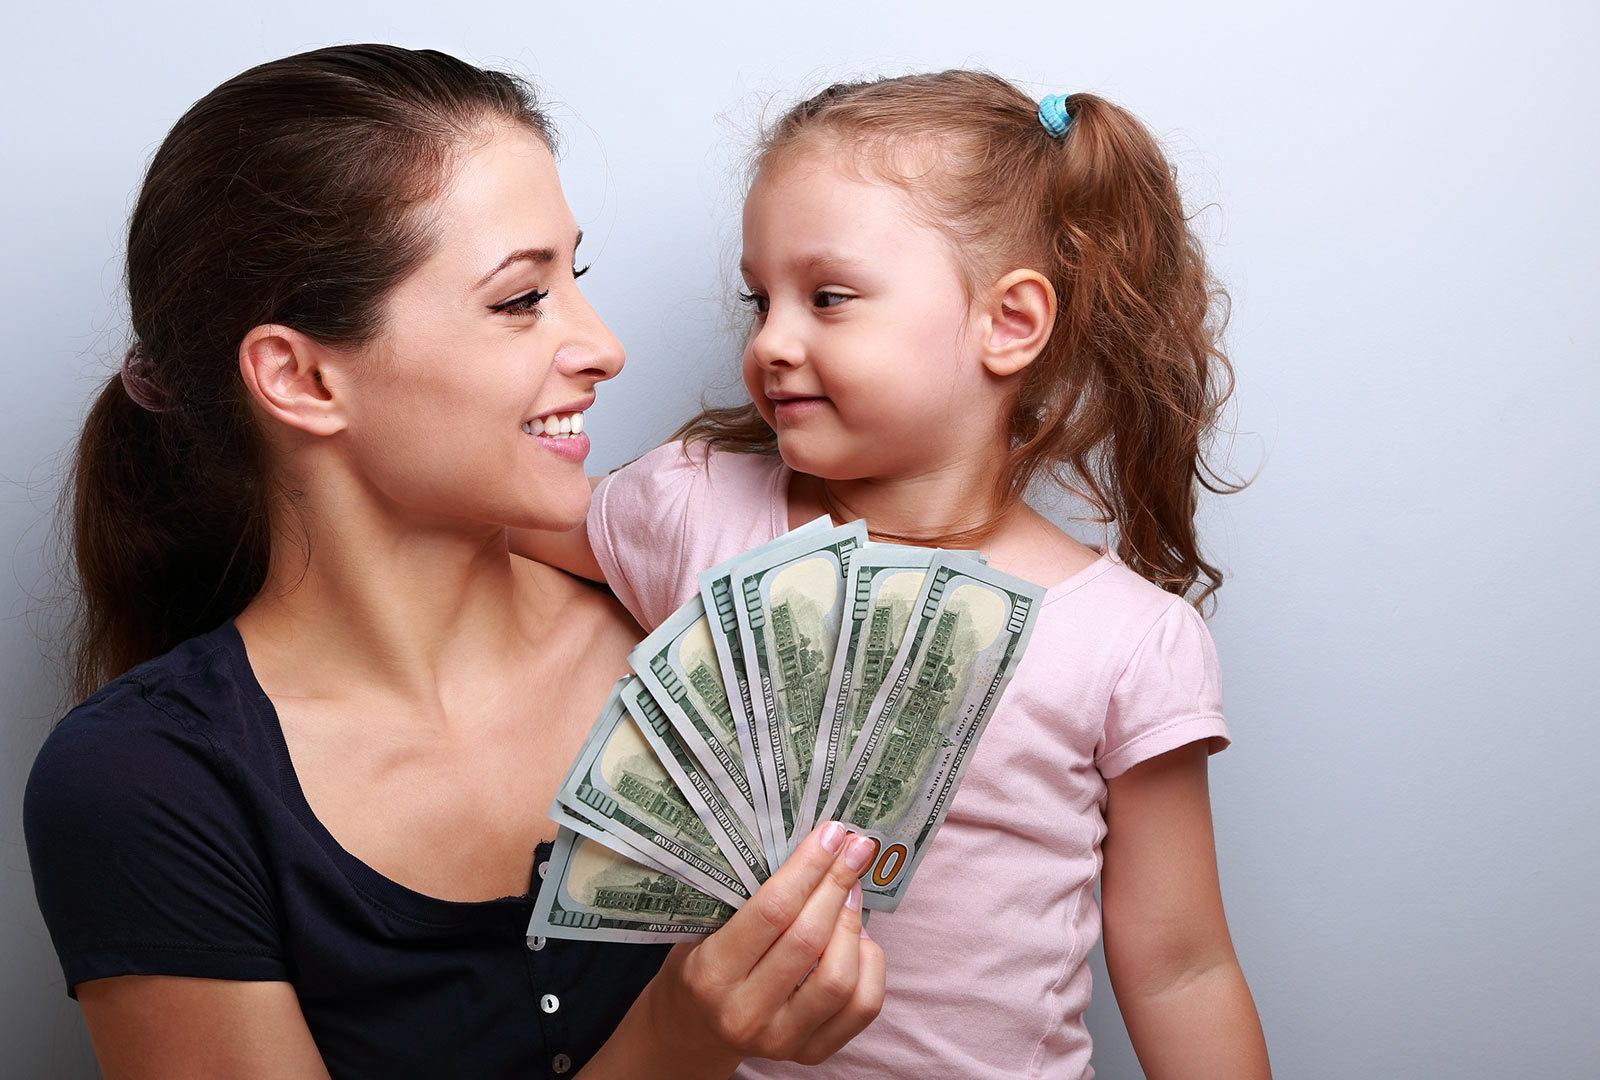 10 Great Ways to Spend an Income Tax Refund